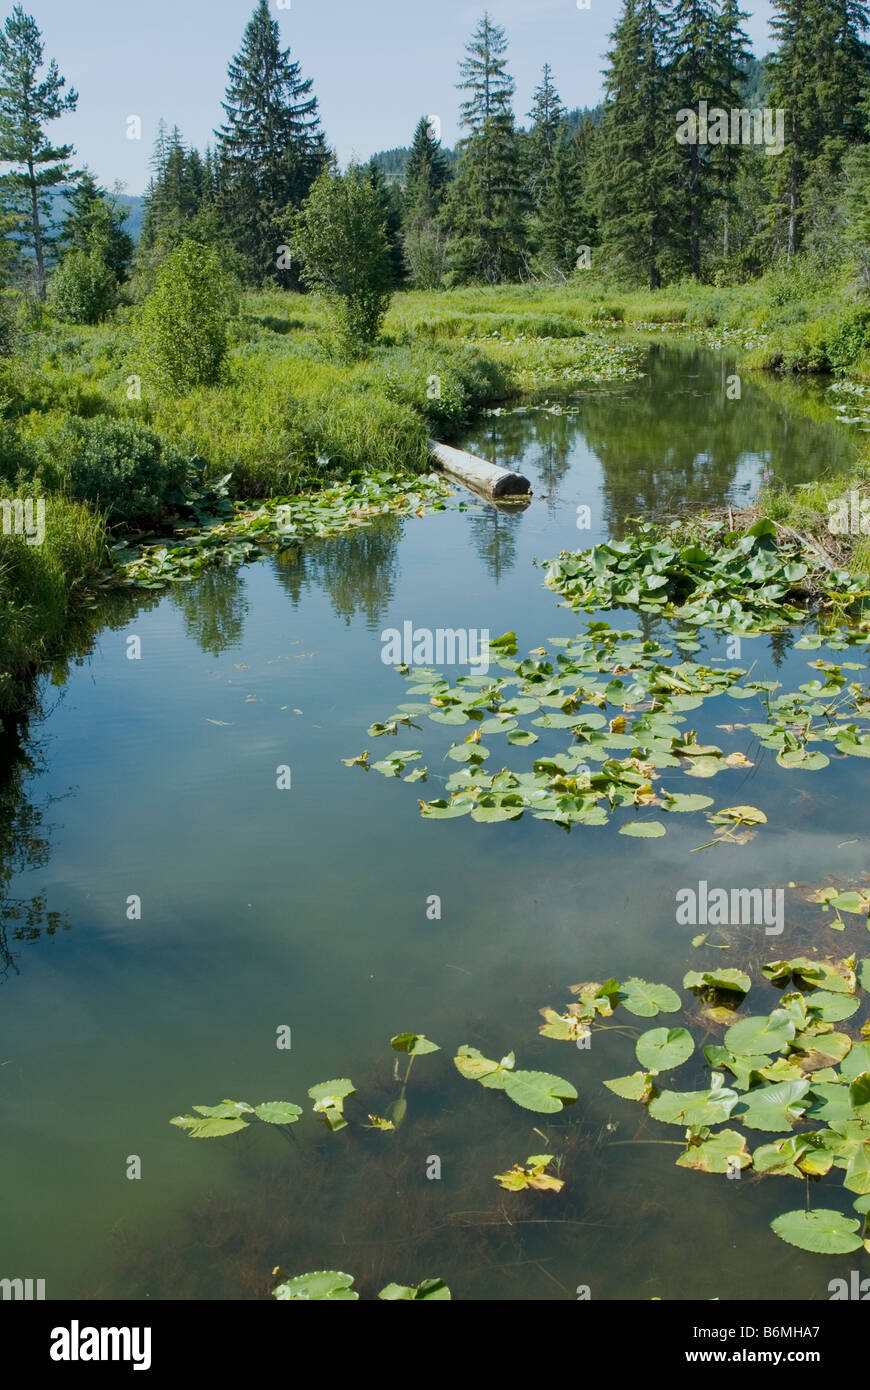 Wilderness pond in Whistler, British Columbia, Canada - Stock Image